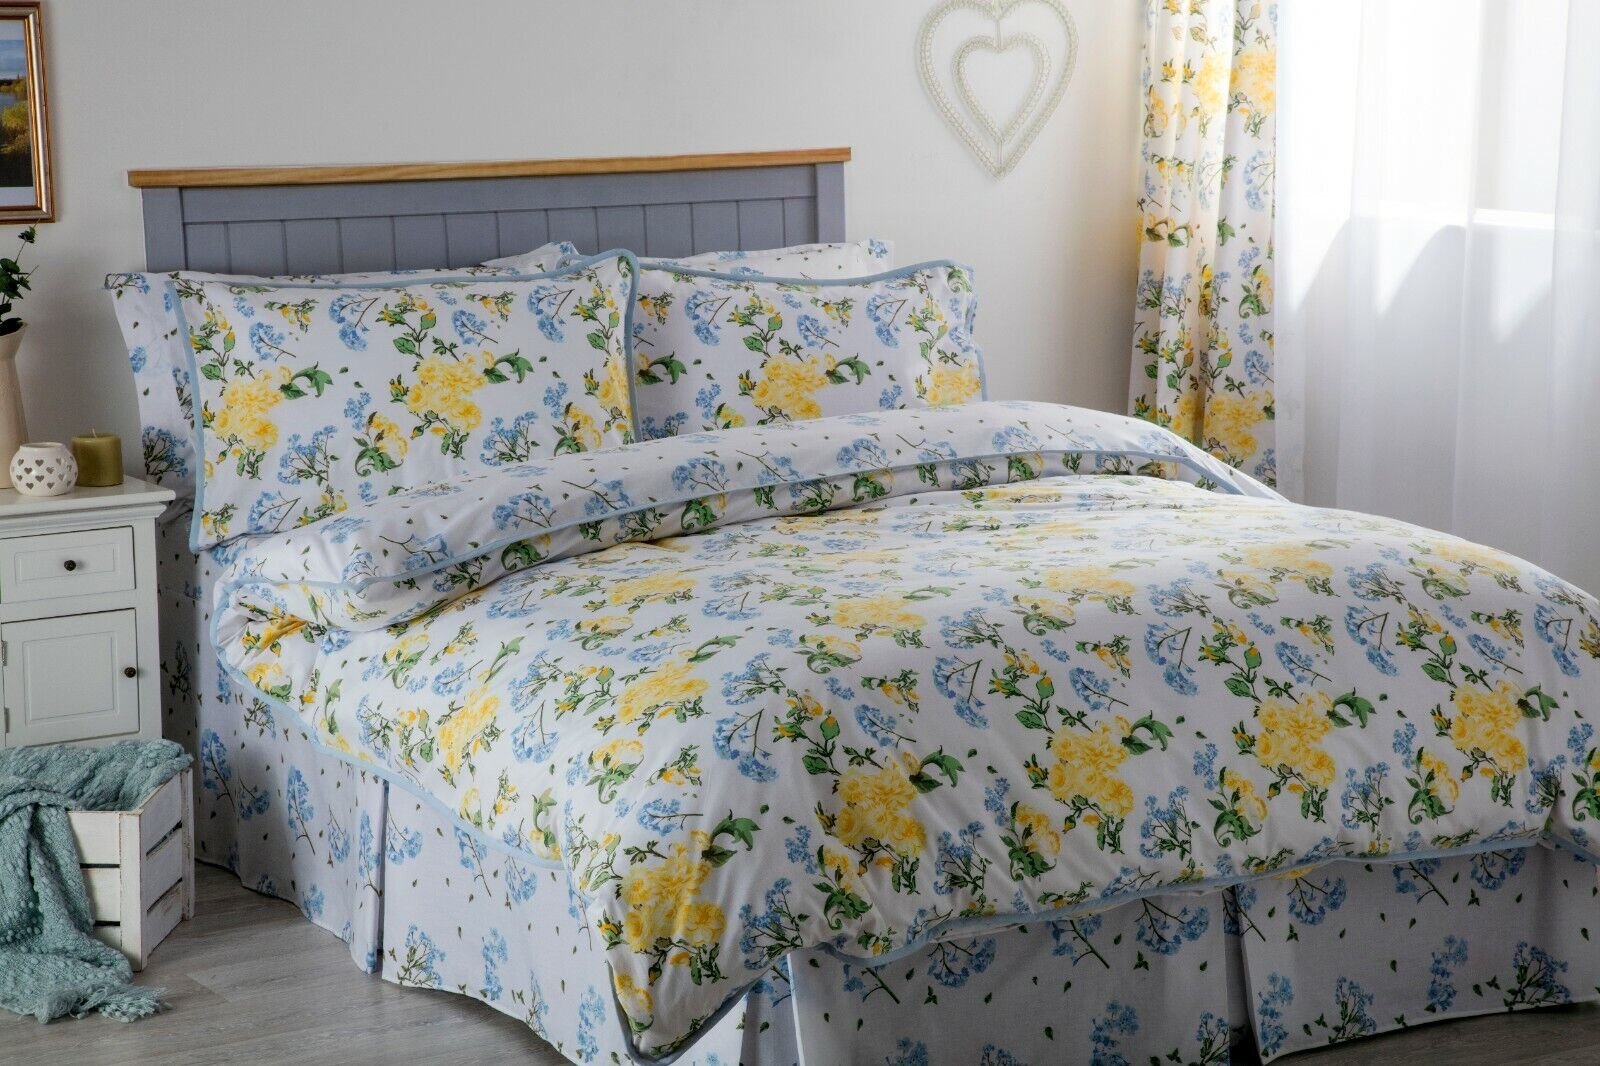 Country Diary Poppy Duvet Cover Bedspread Fitted Valance Curtains Oxford Pillow Case Pair Standard For Sale Ebay